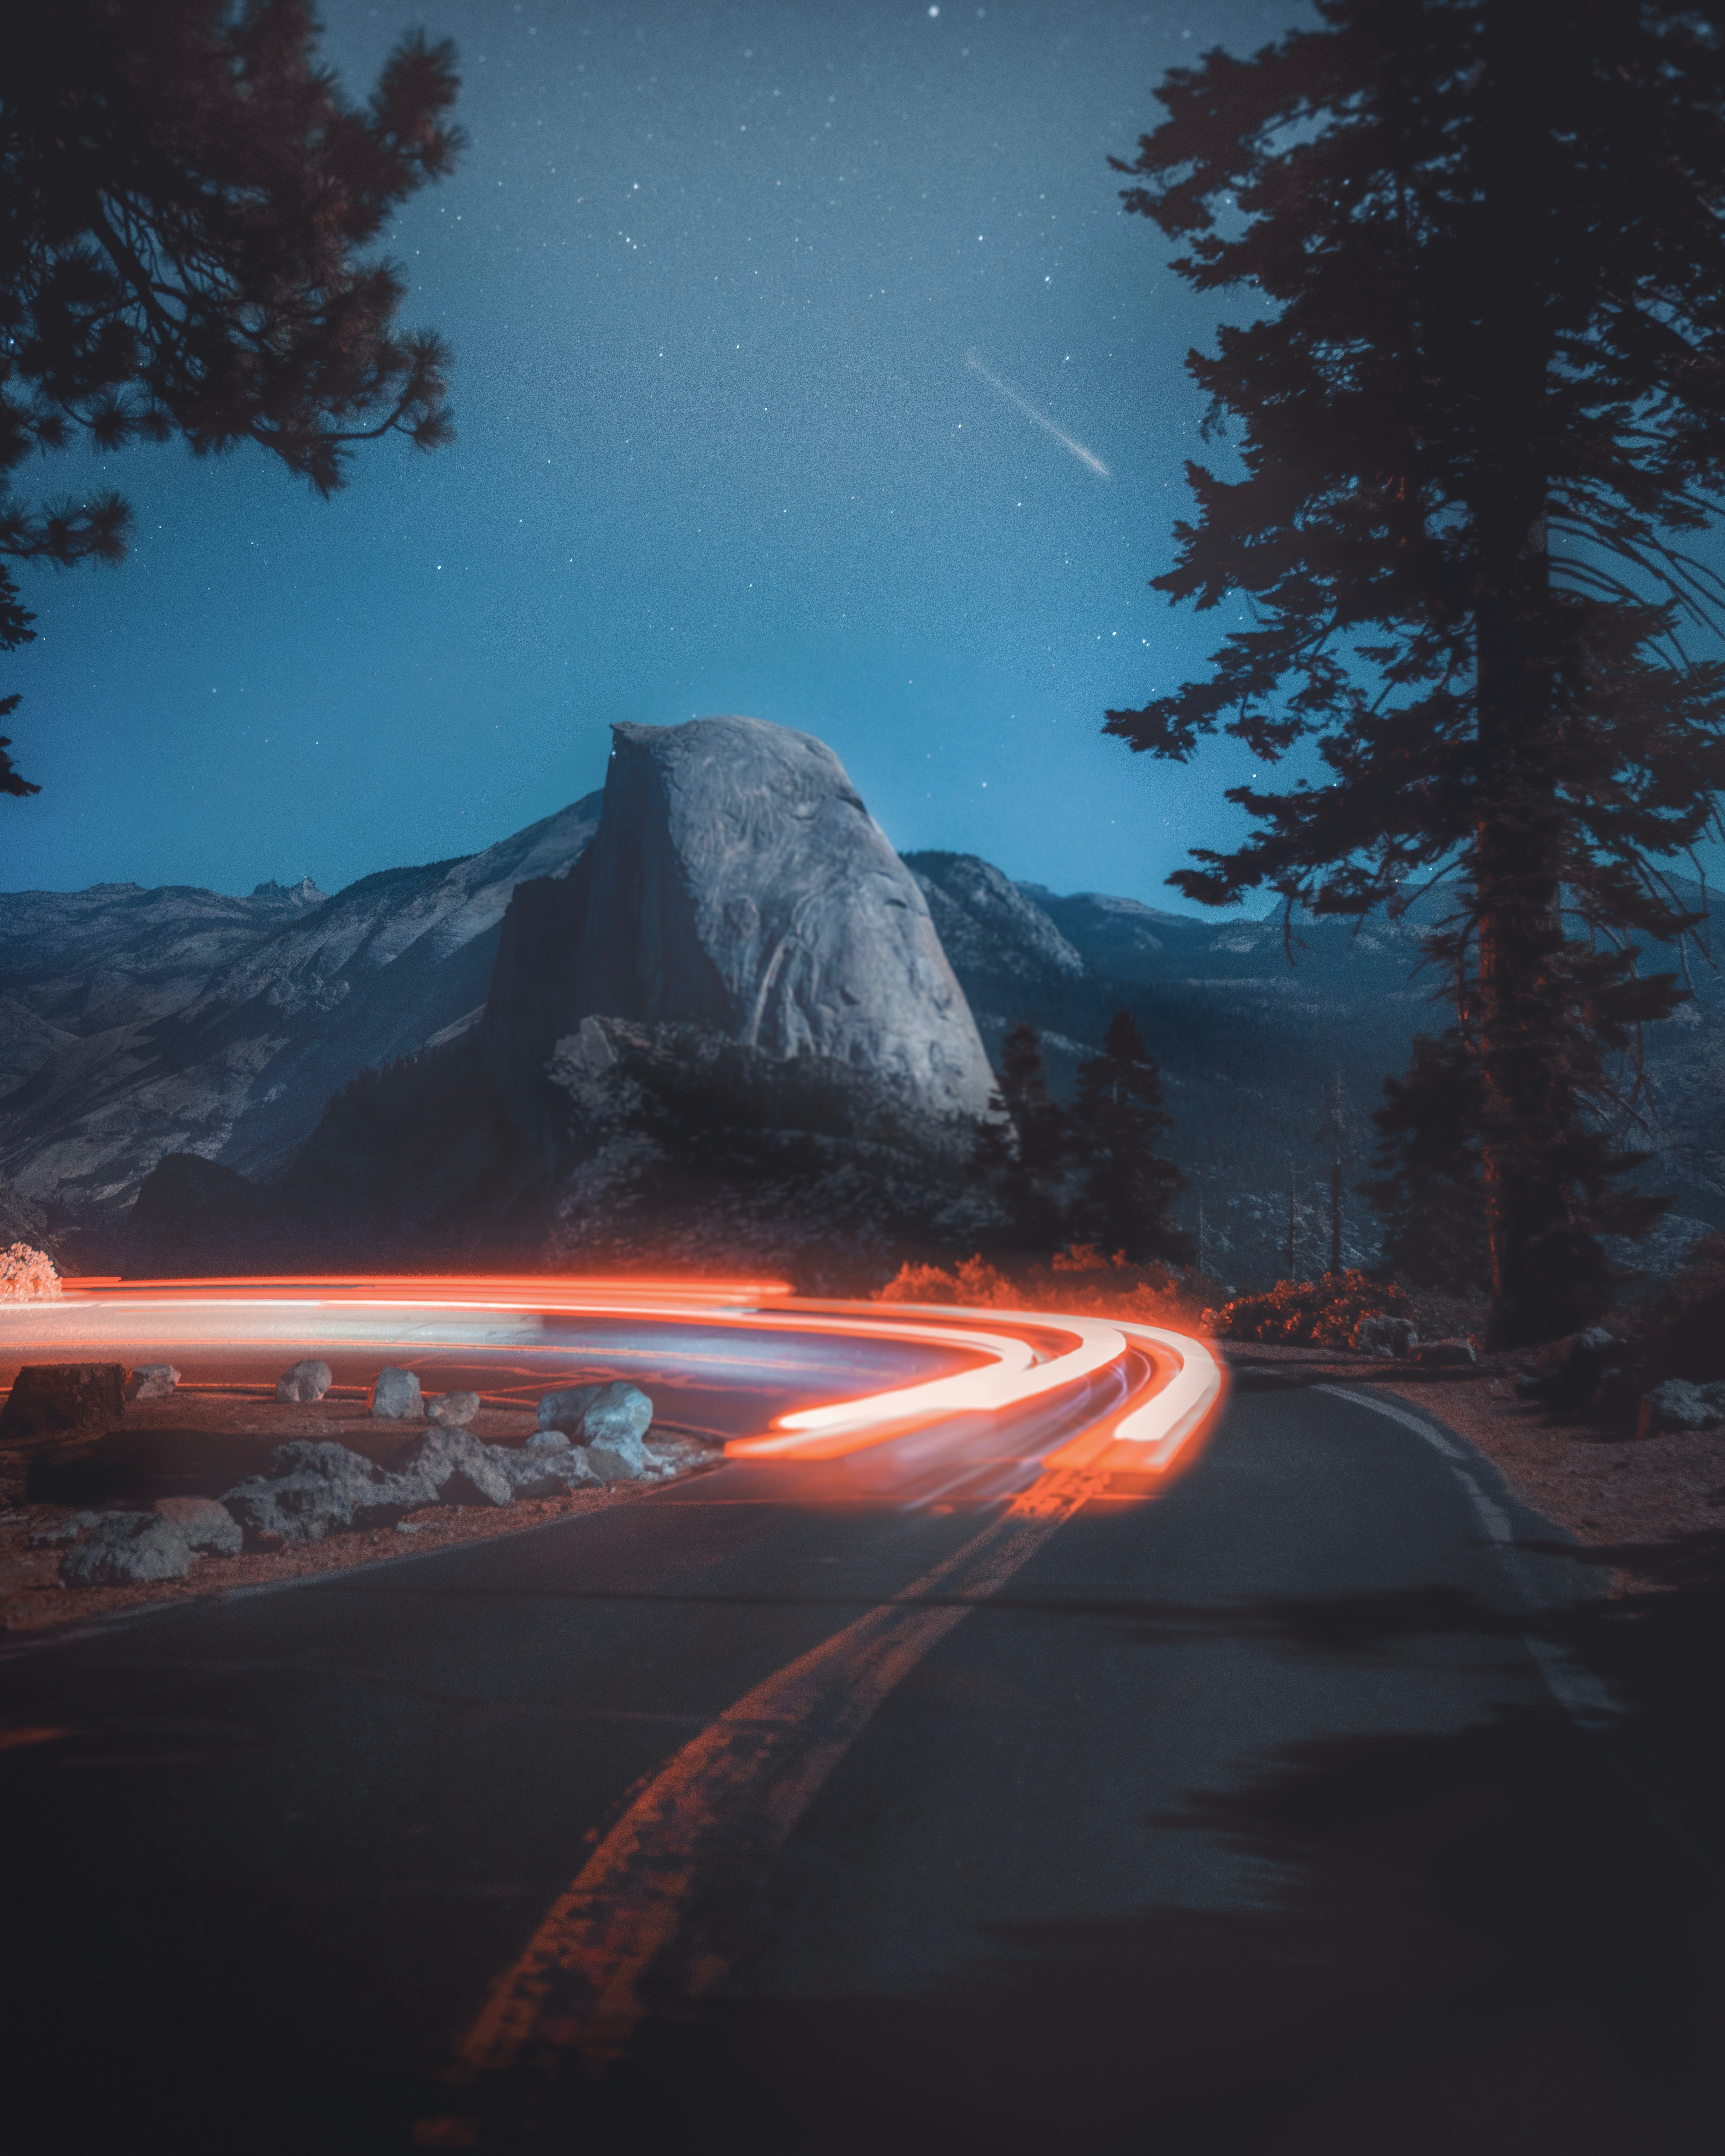 Long exposure photography of a road